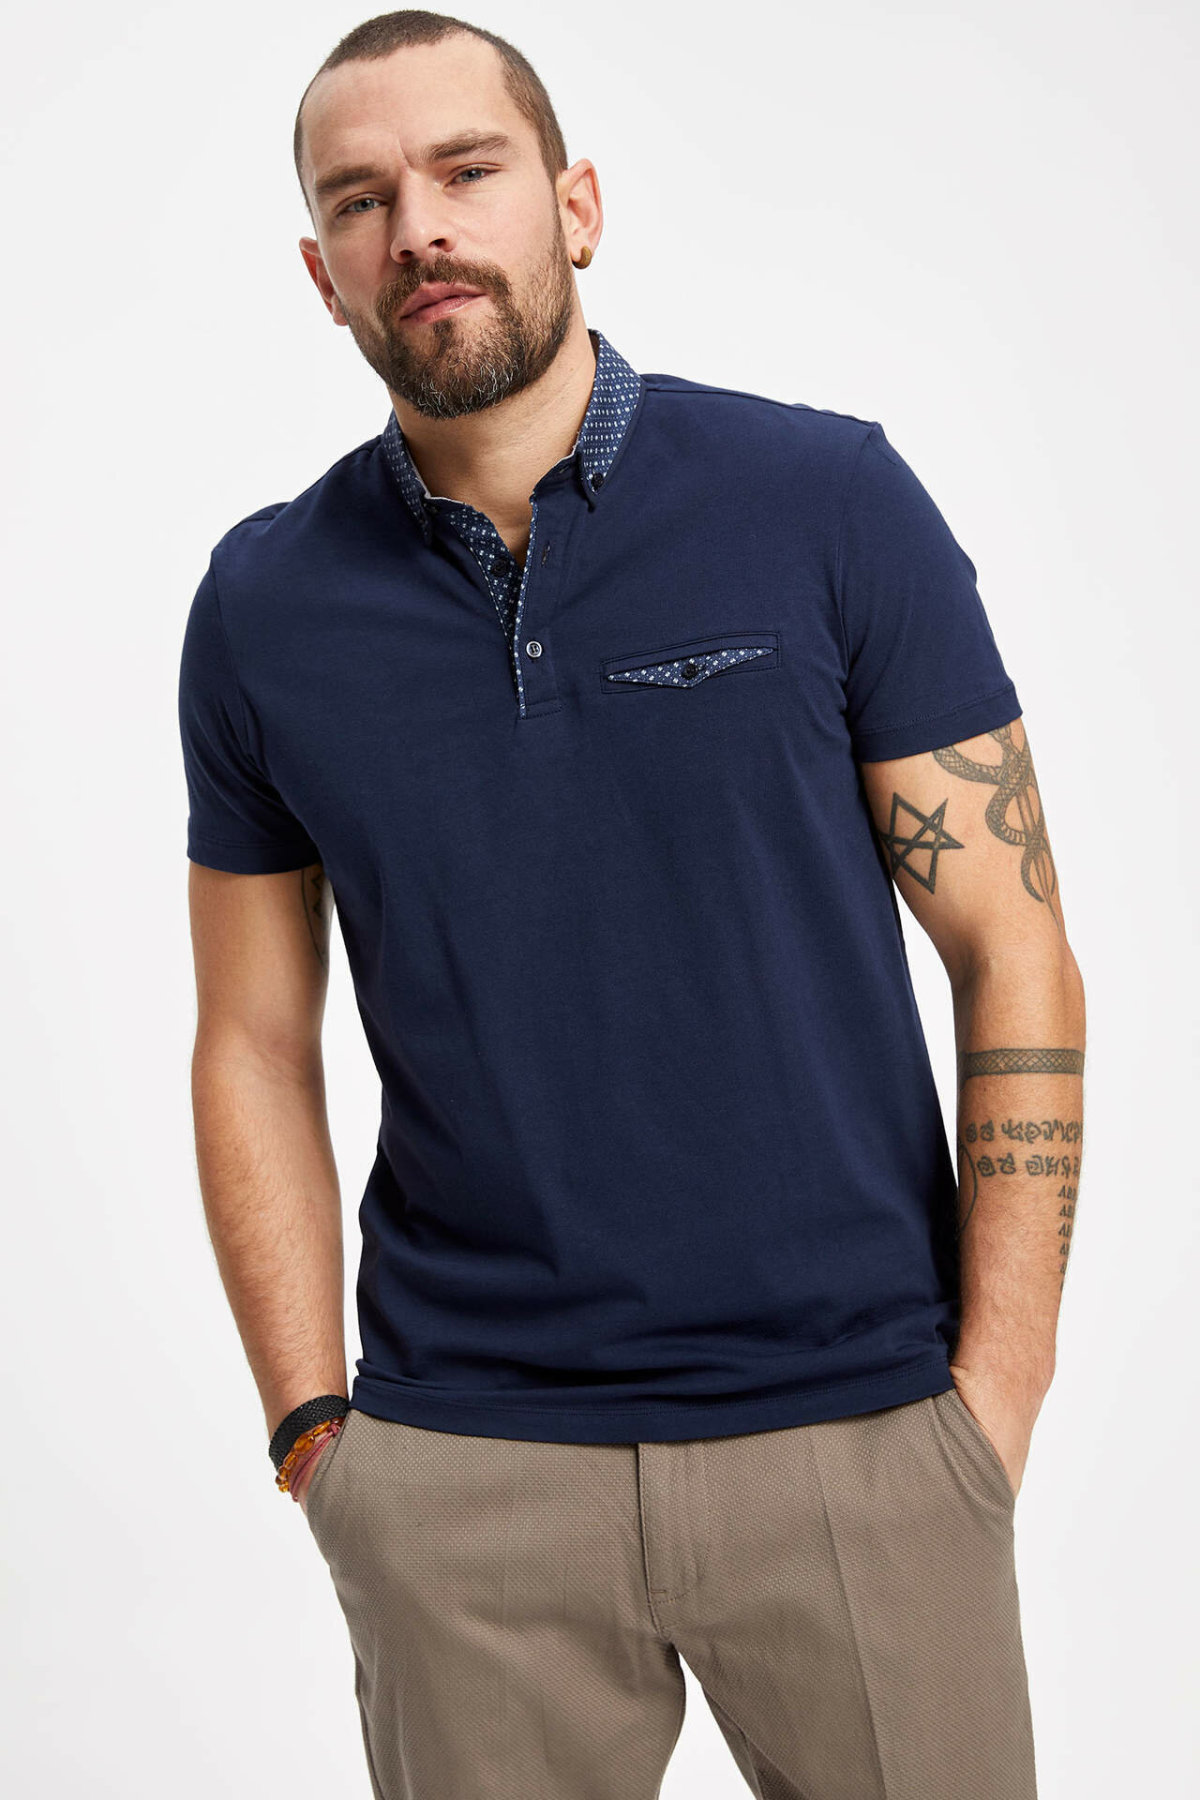 DeFacto Man Fashion Polo Shirt For Men's Casual Pure Color Loose Short Sleeves Male Comfort Tops Summer New - K1273AZ19SP